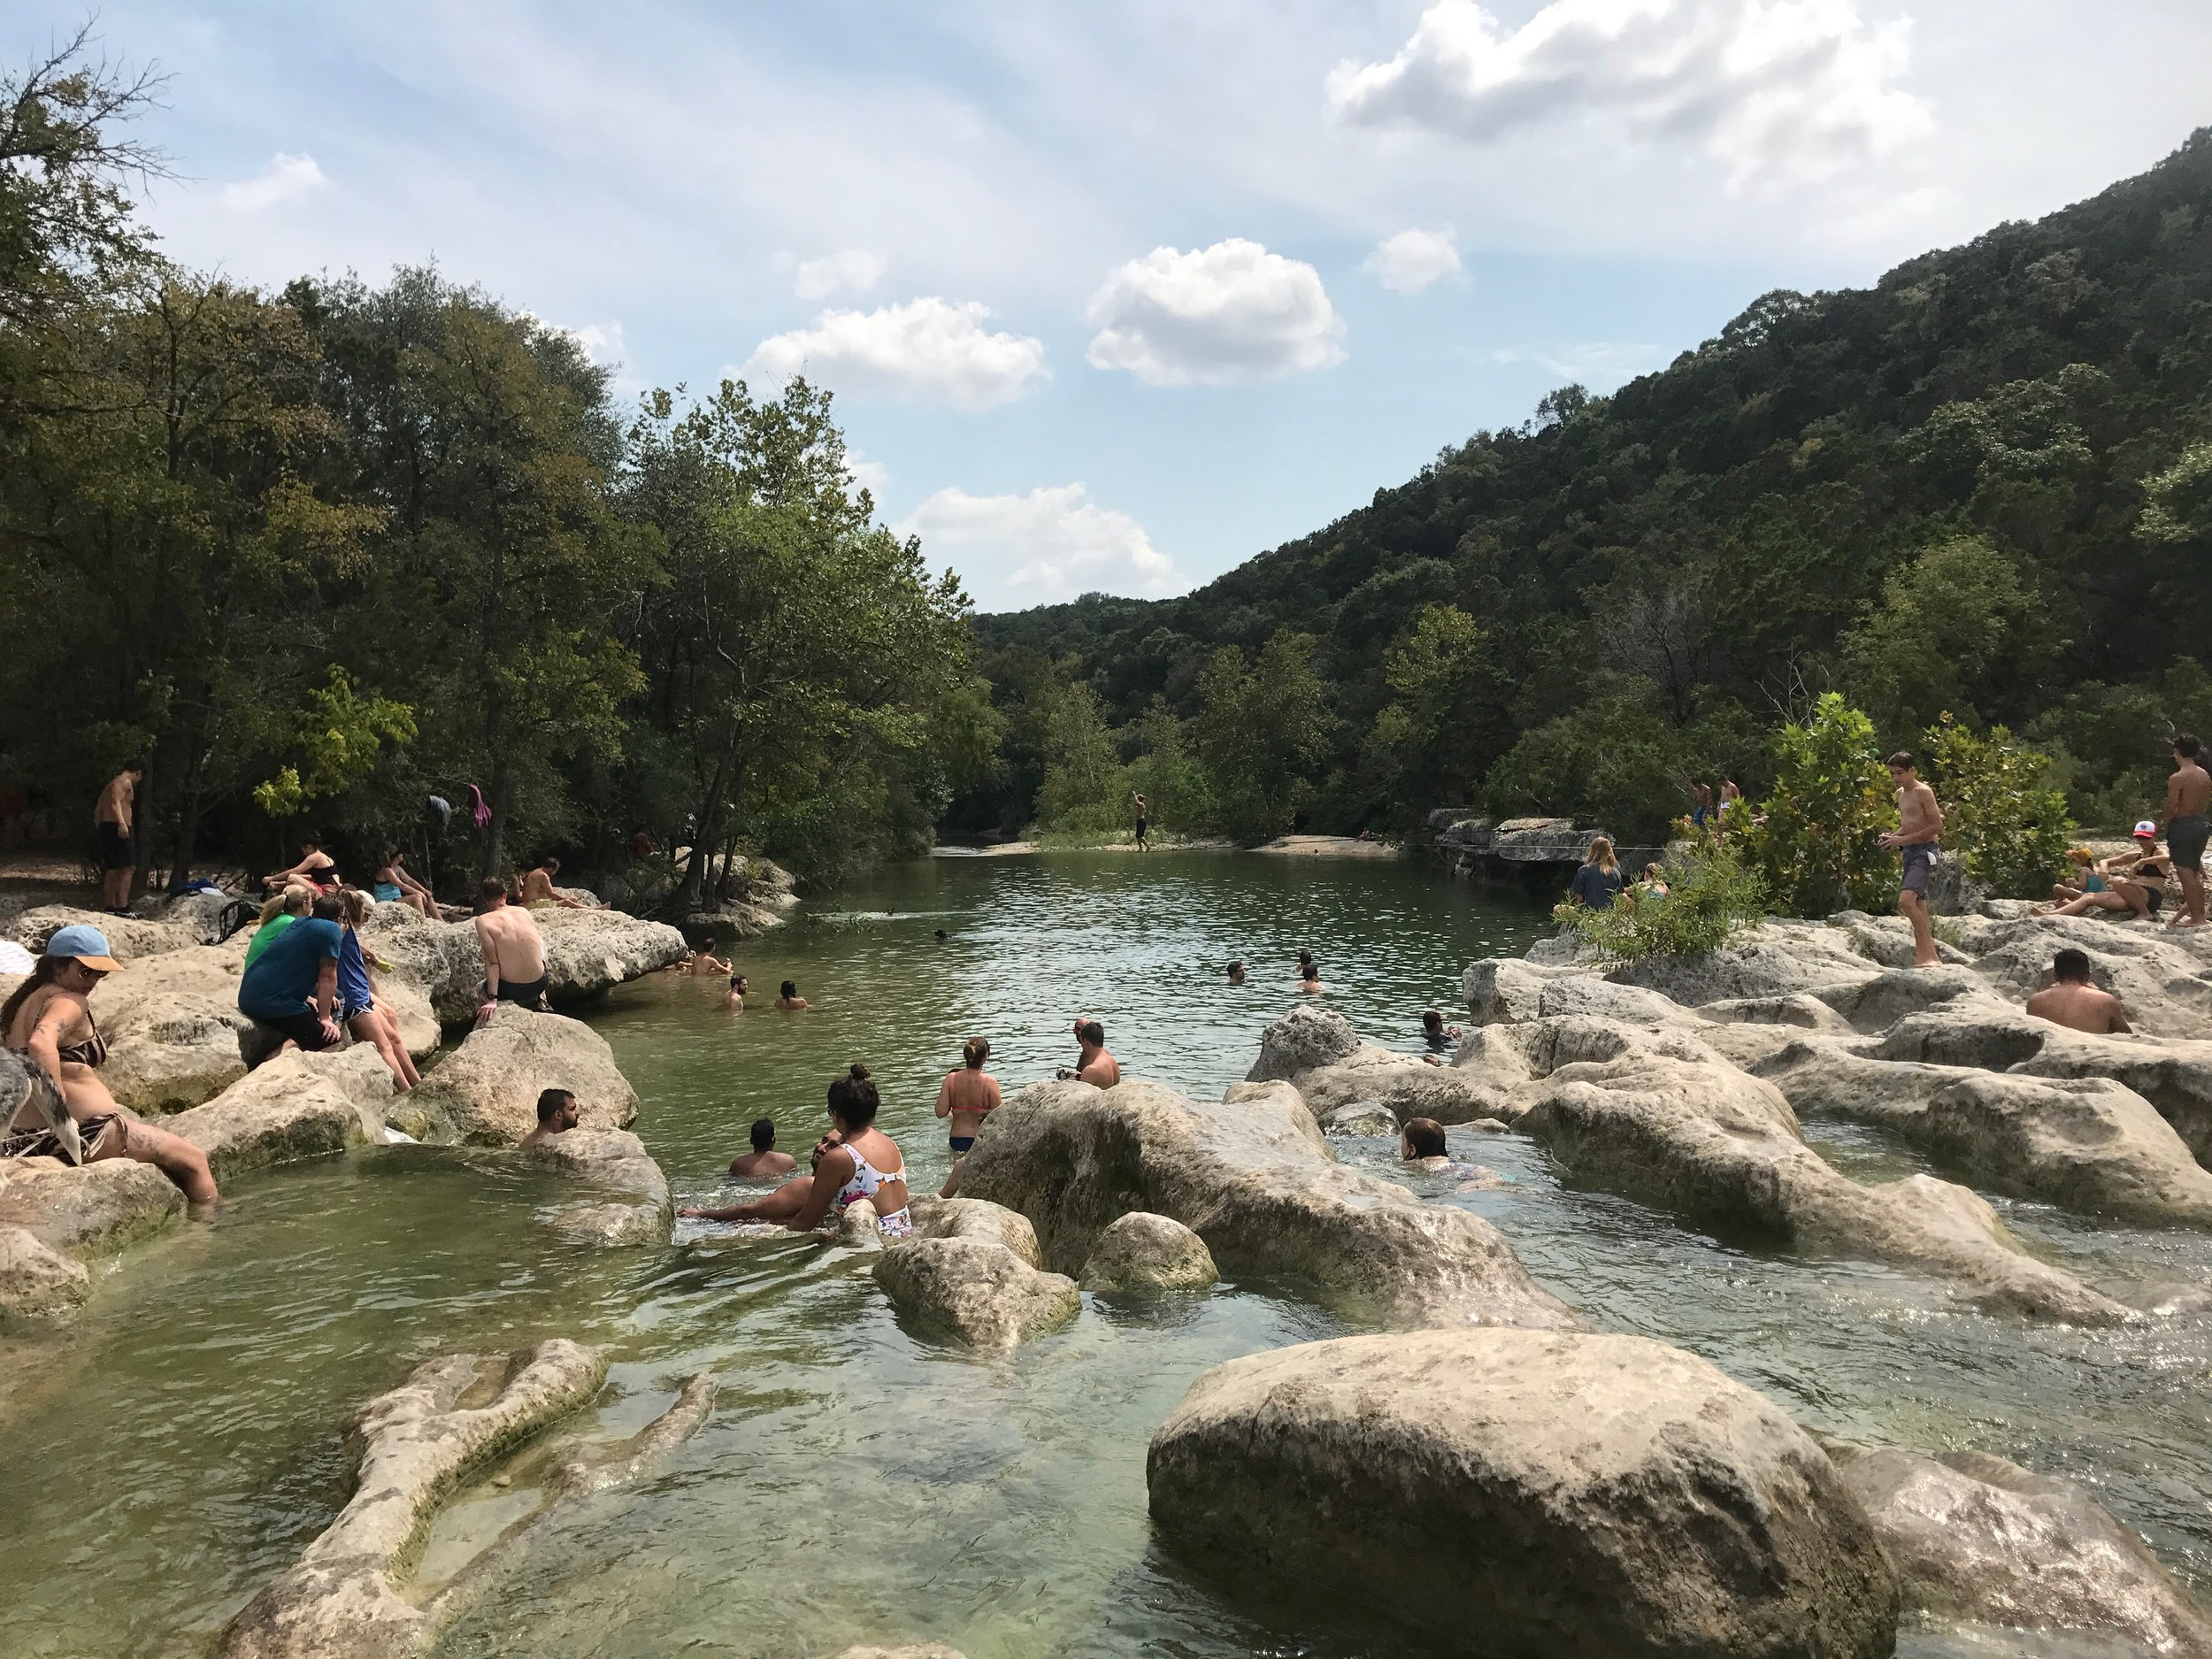 A classic Austin early summer day